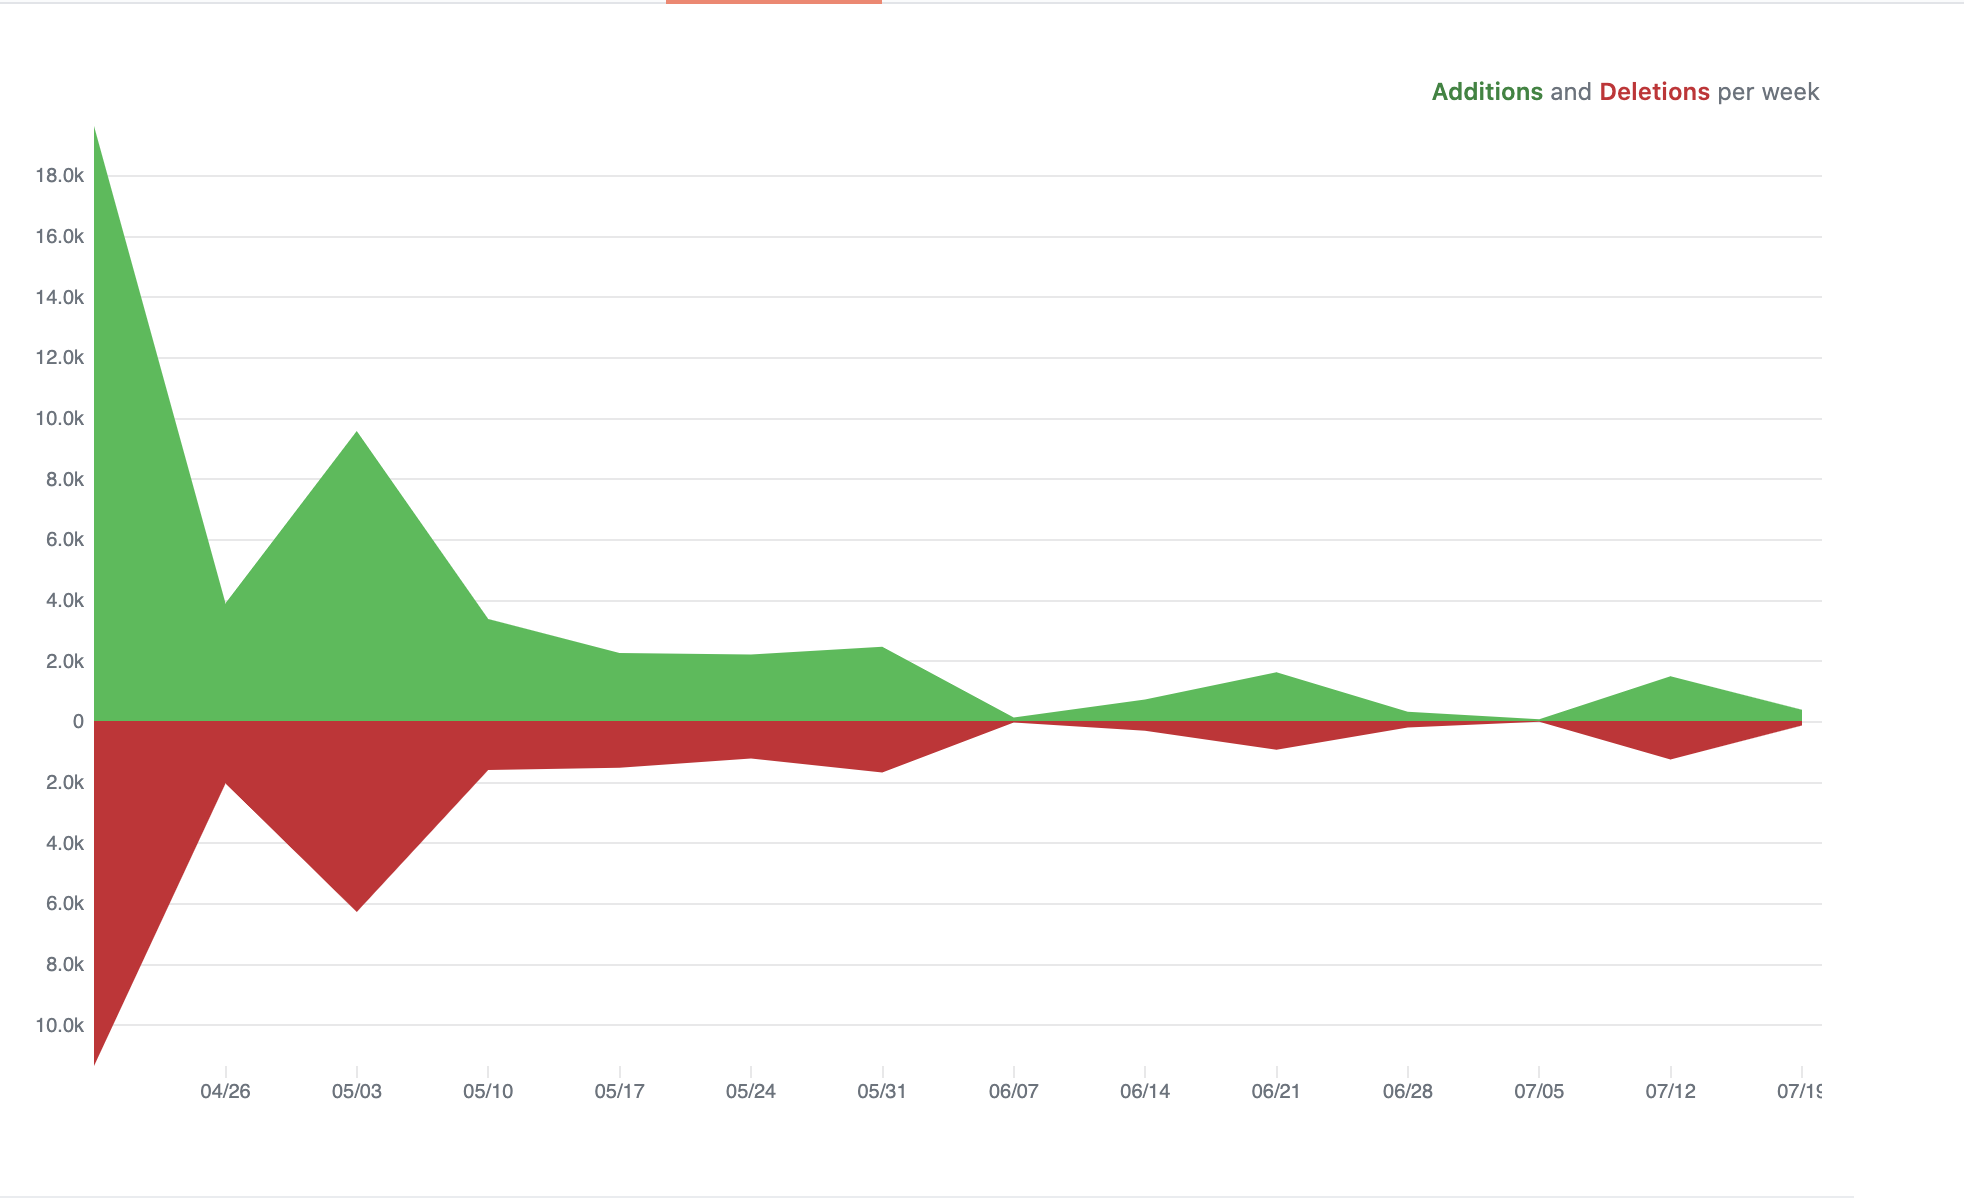 graph showing 18.0k additions and 10.0k deletions per week for vite